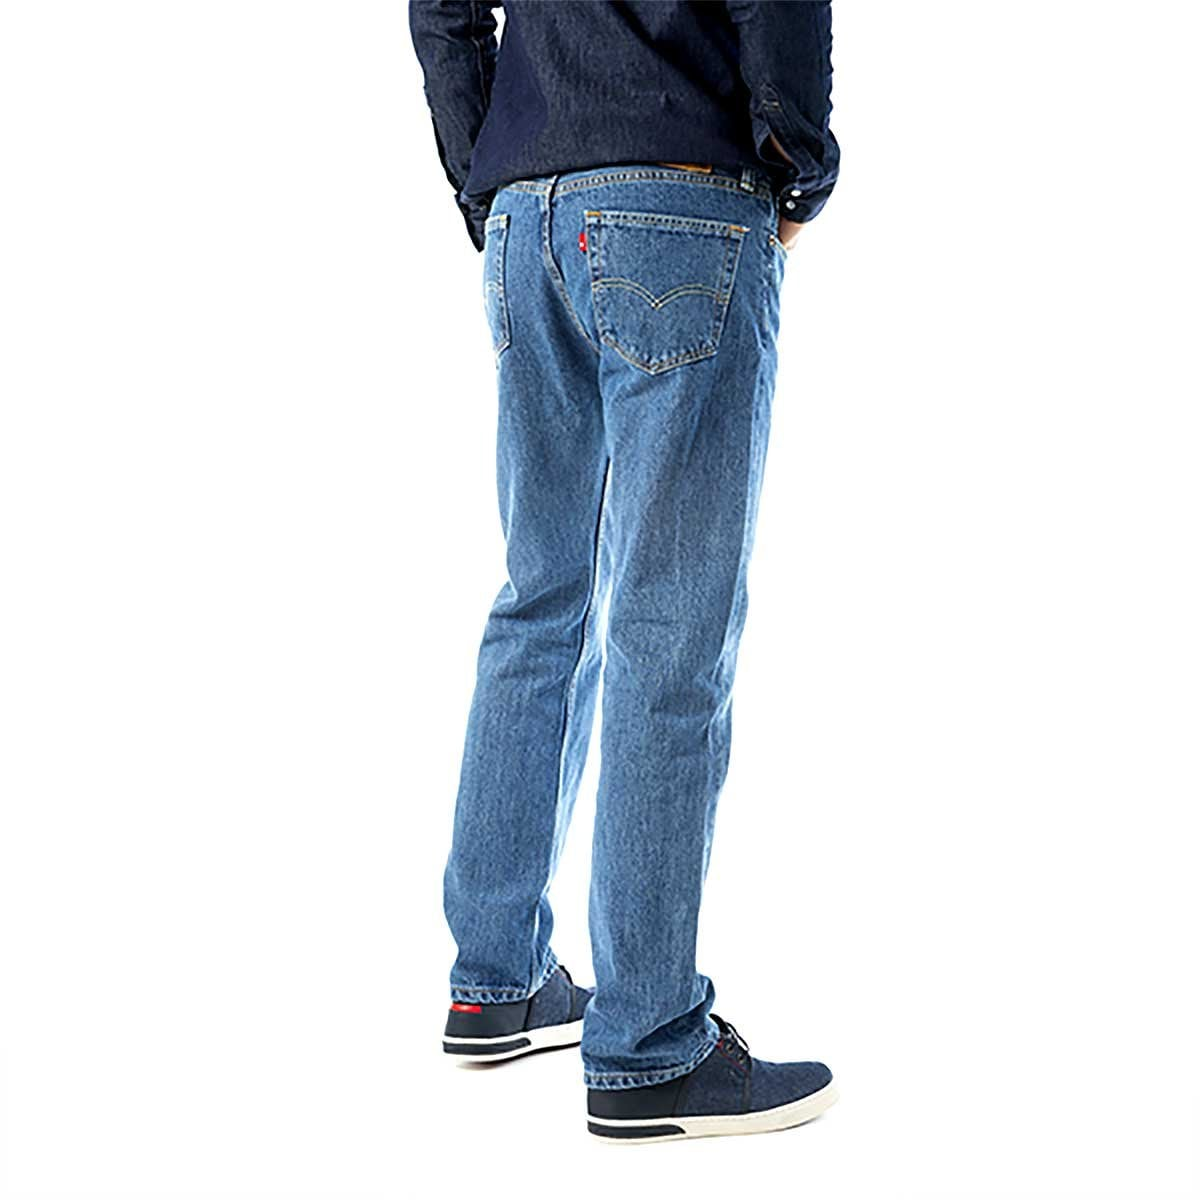 Jeans 505 Regular Fit Levi's